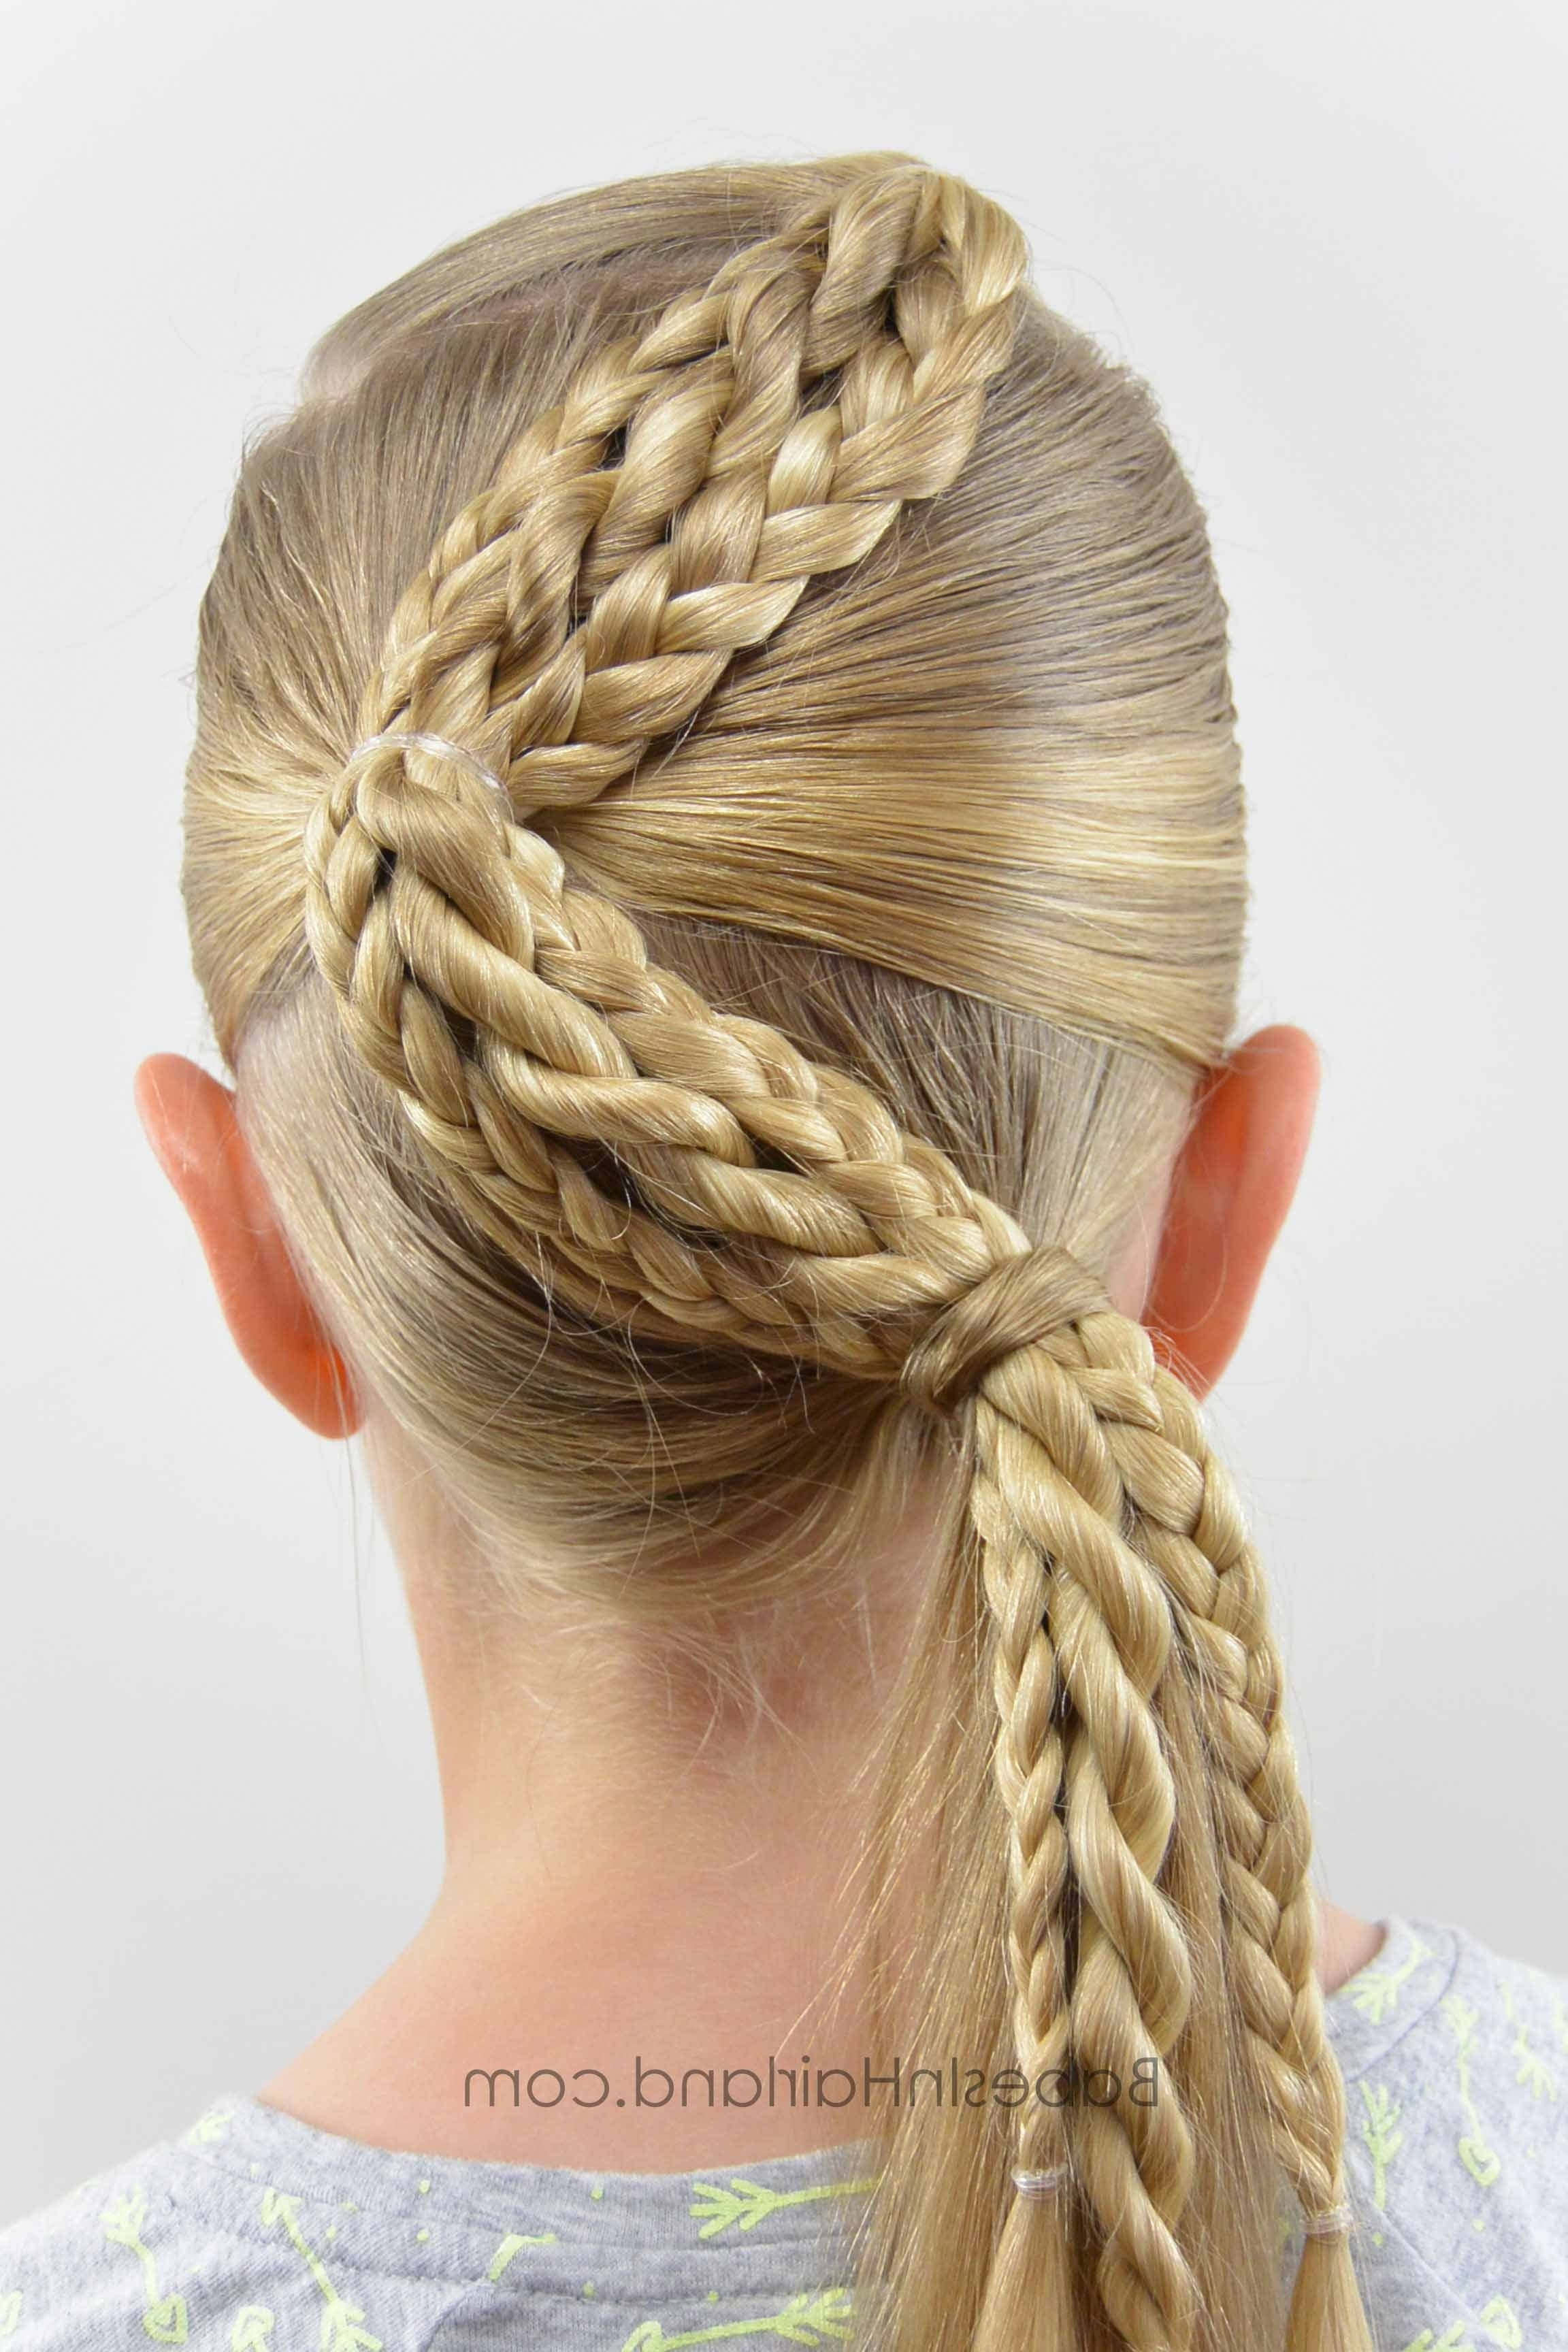 Most Current Zig Zag Braided Hairstyles In Zig Zag Braids – Babes In Hairland (View 5 of 15)